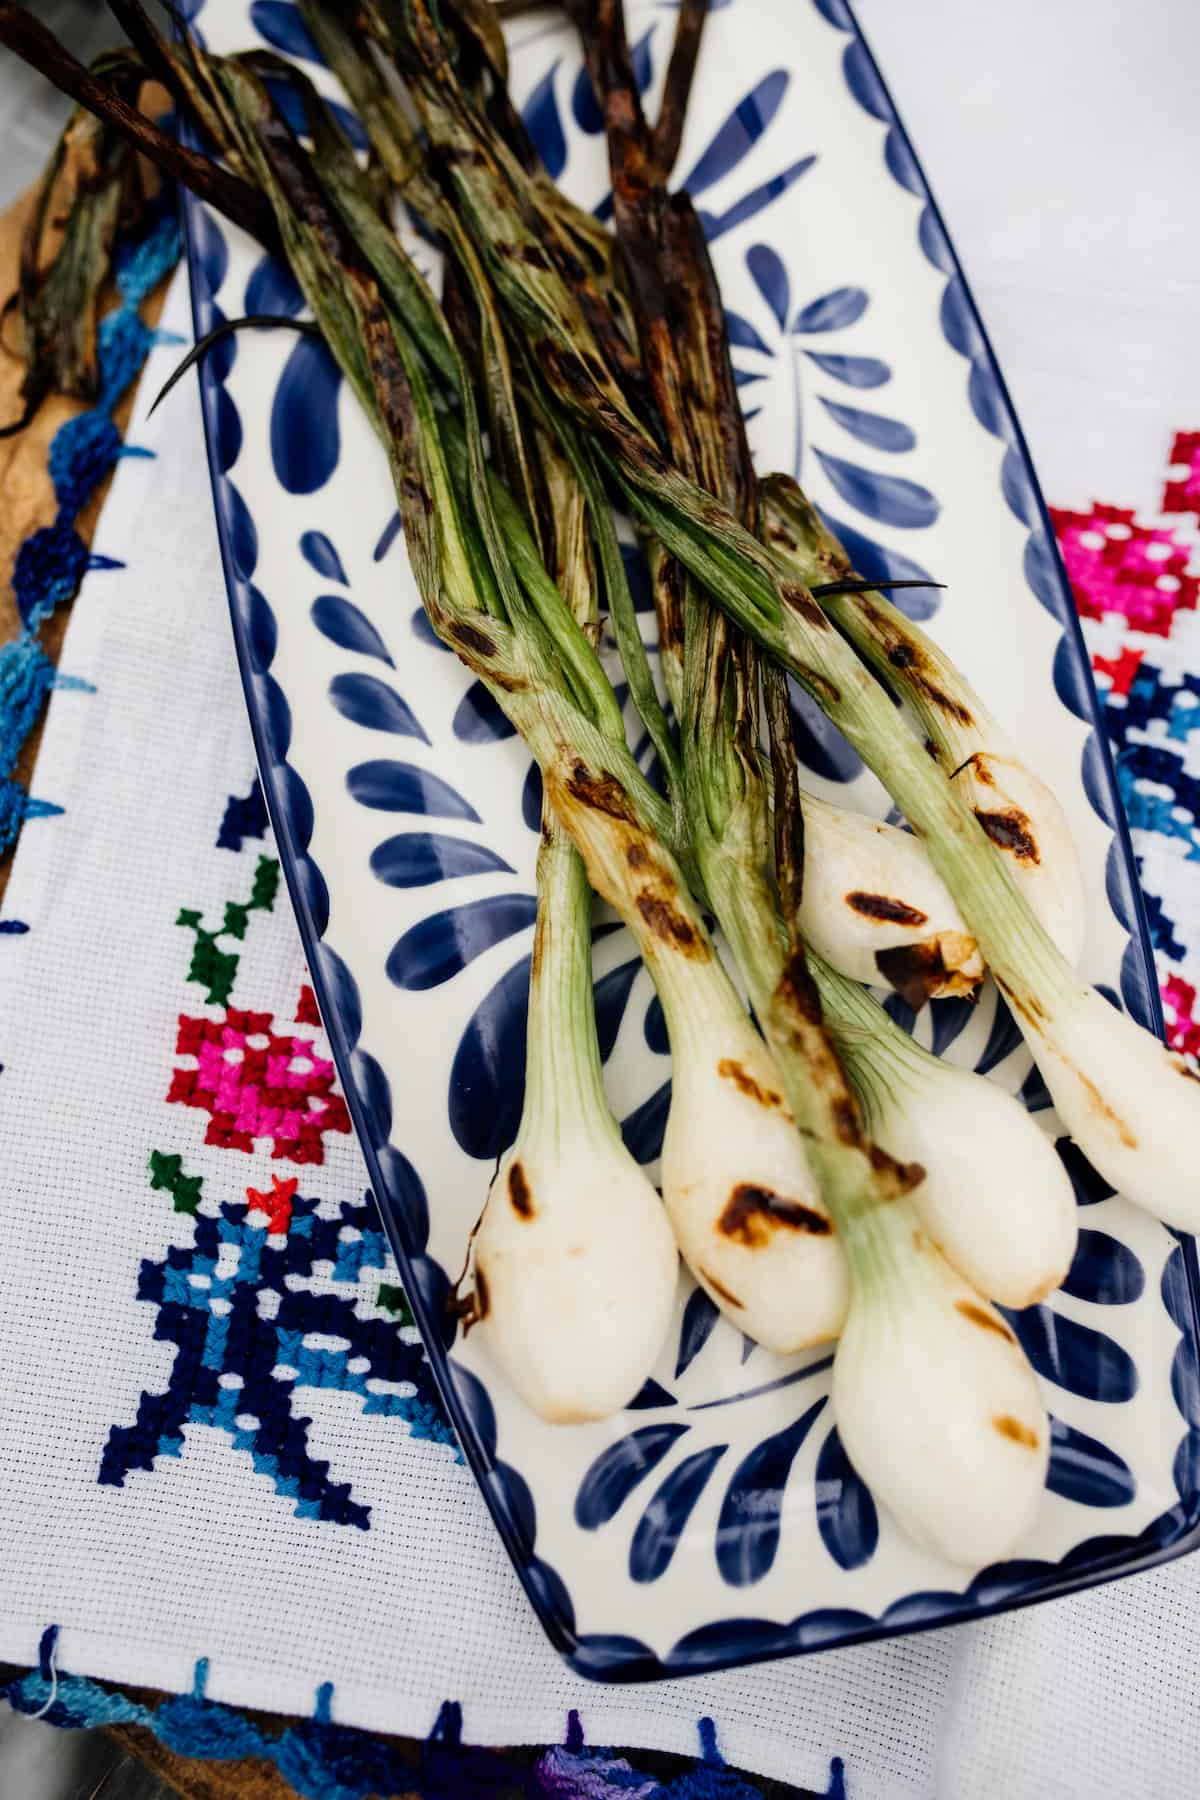 bunch of grilled spring onions (cebollitas asadas) on a painted blue and white plate